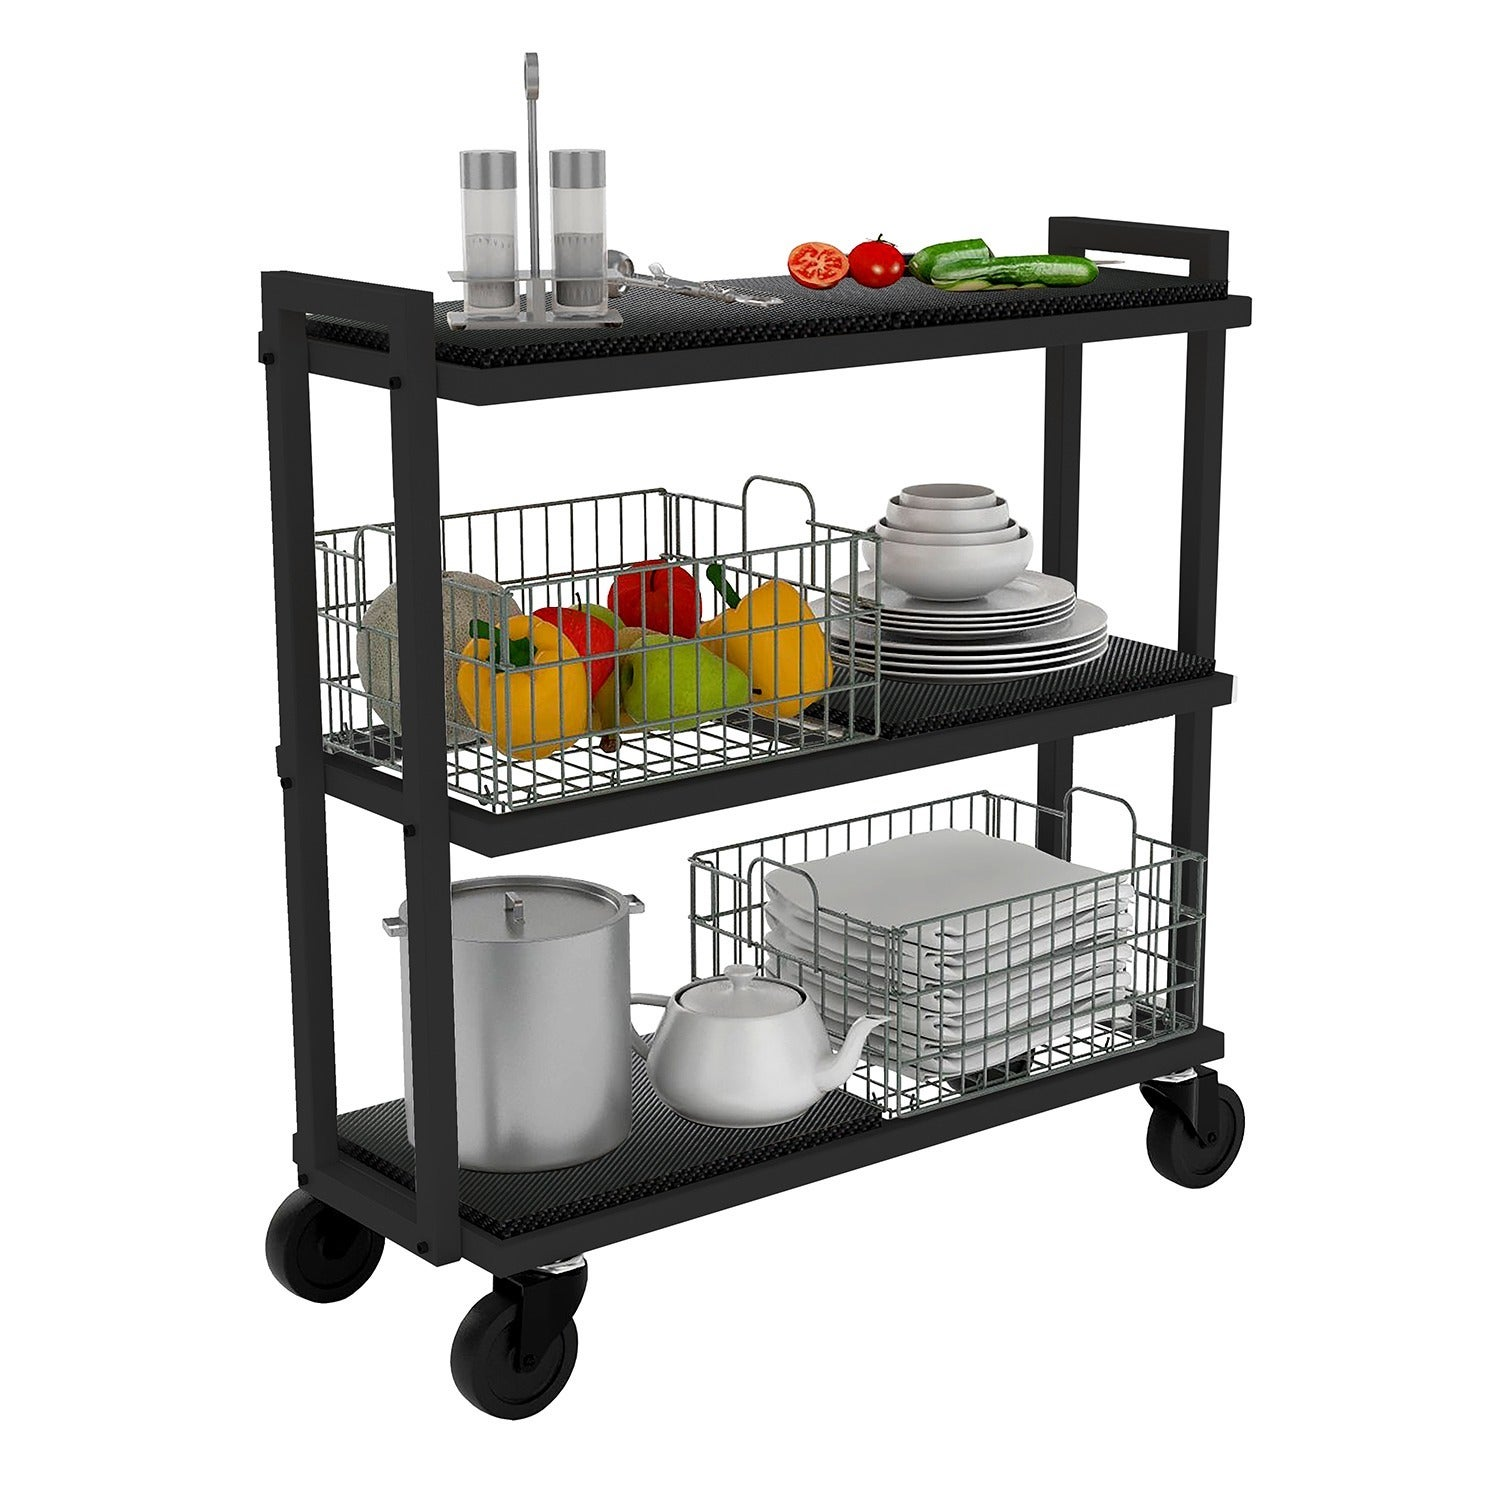 Shop Simple Living Rolling Galvin Microwave Cart: Shop Urb SPACE 3-tier Black Tubular Steel Cart System With